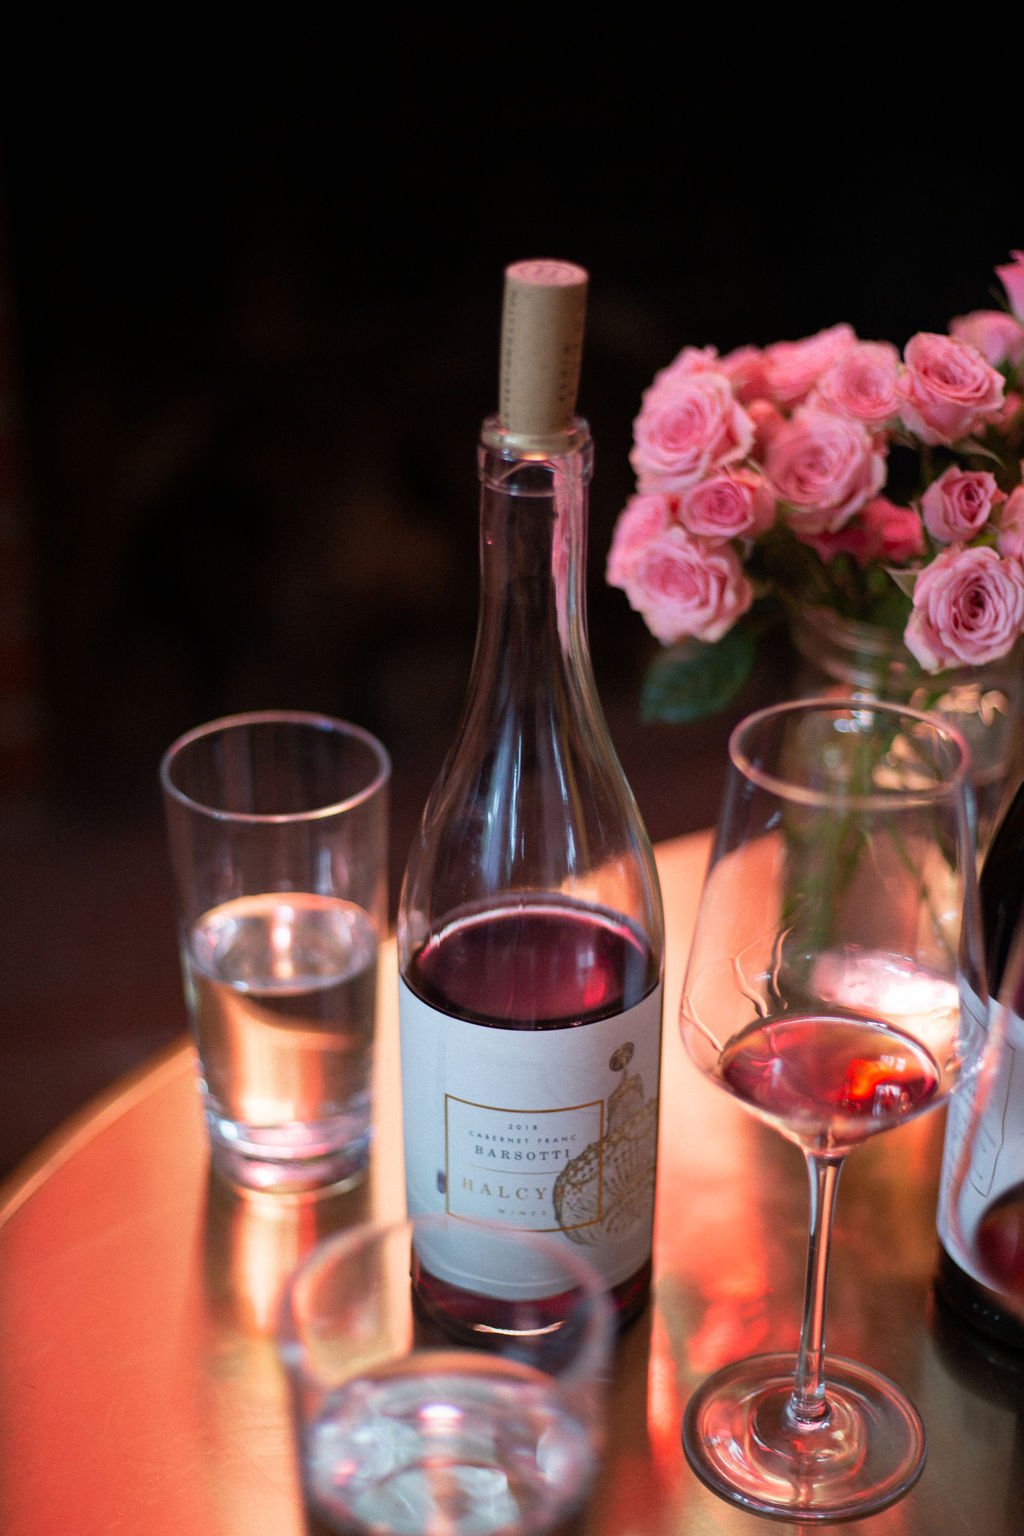 wine bottle, glasses, and roses on table